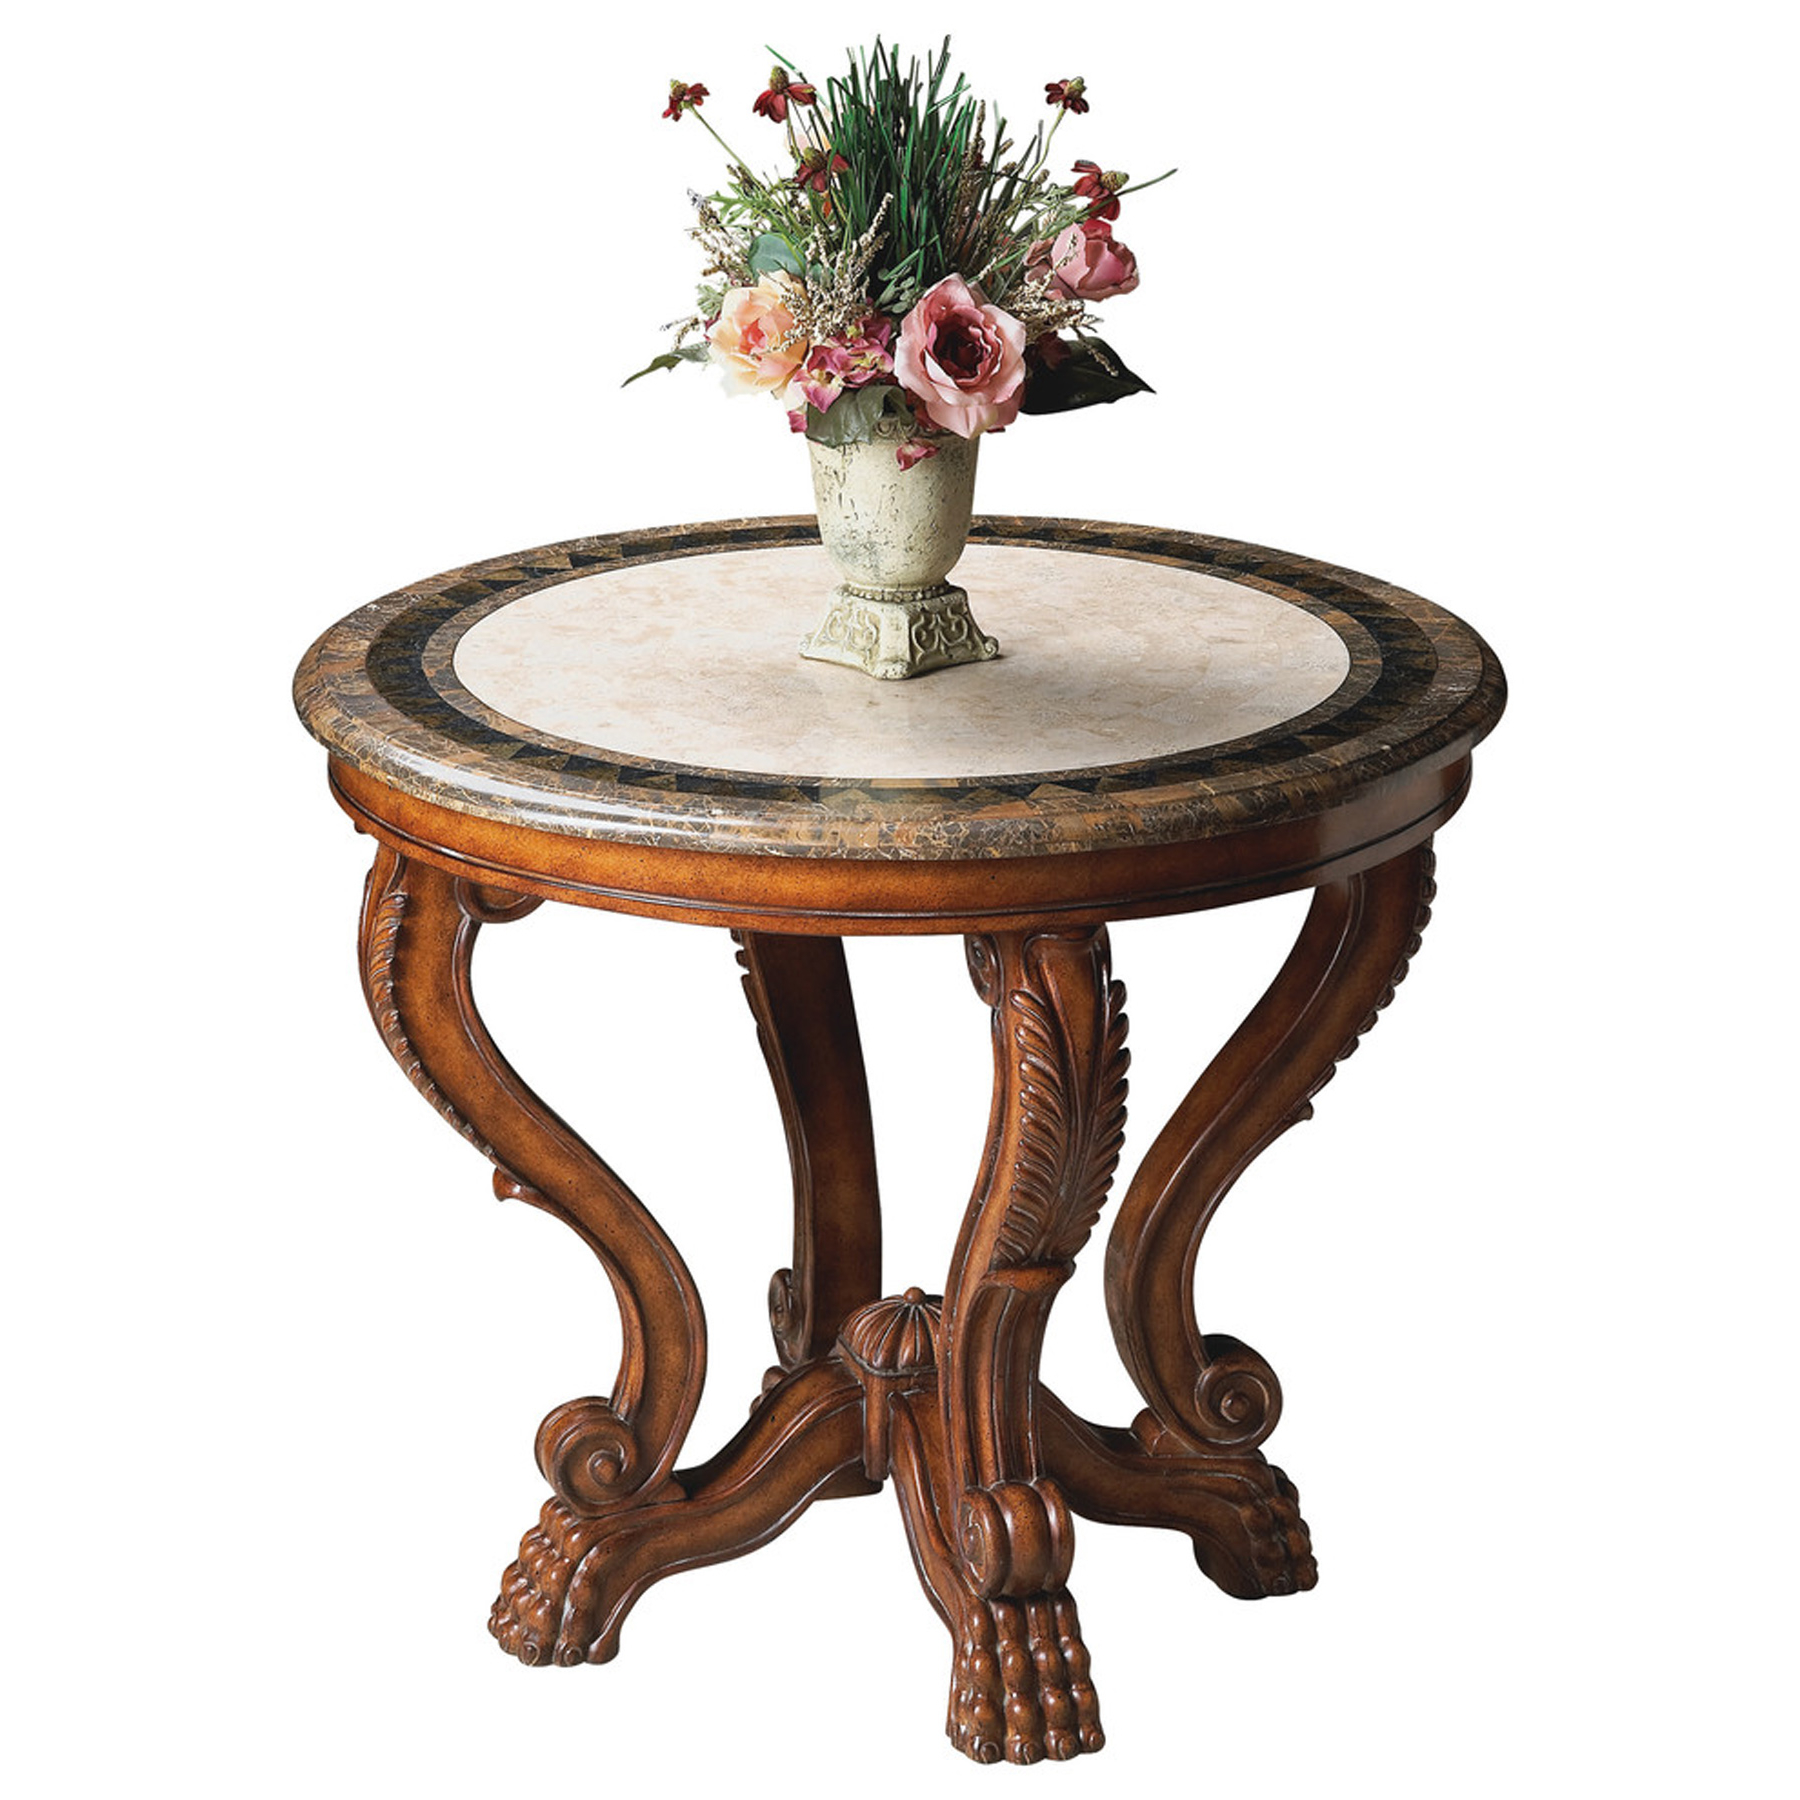 Butler Mabel Fossil Stone Foyer Table - Walmart.com